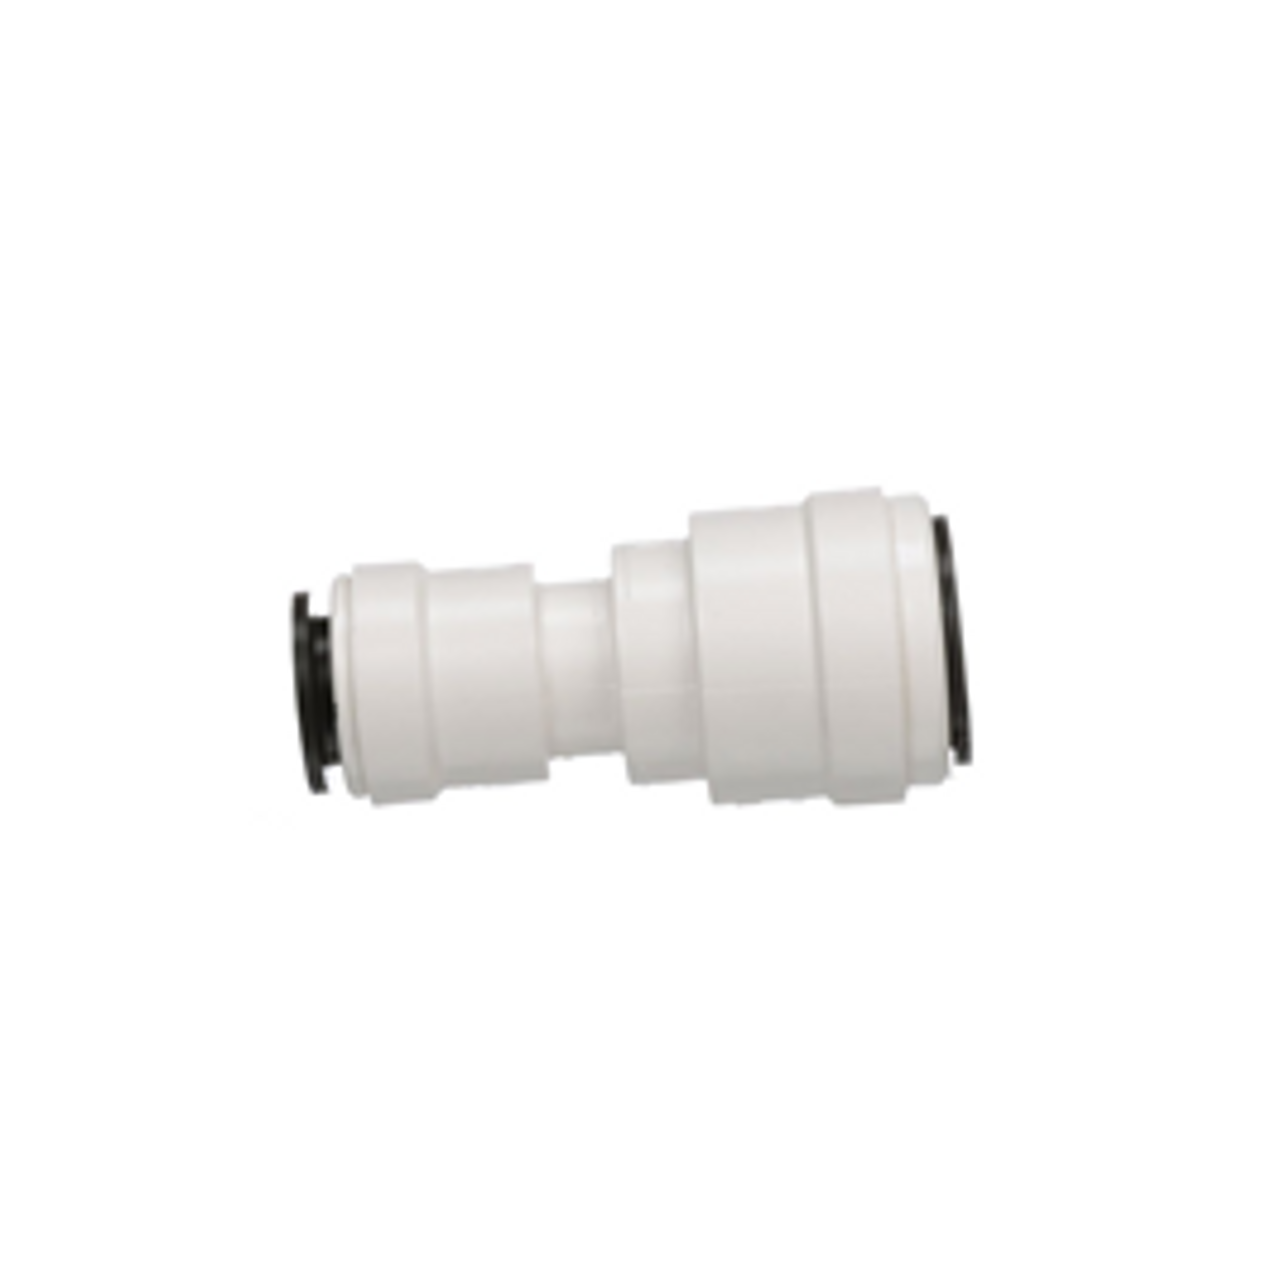 """½"""" CTS x 3/8"""" CTS Reducing Coupling 3515R-1008"""